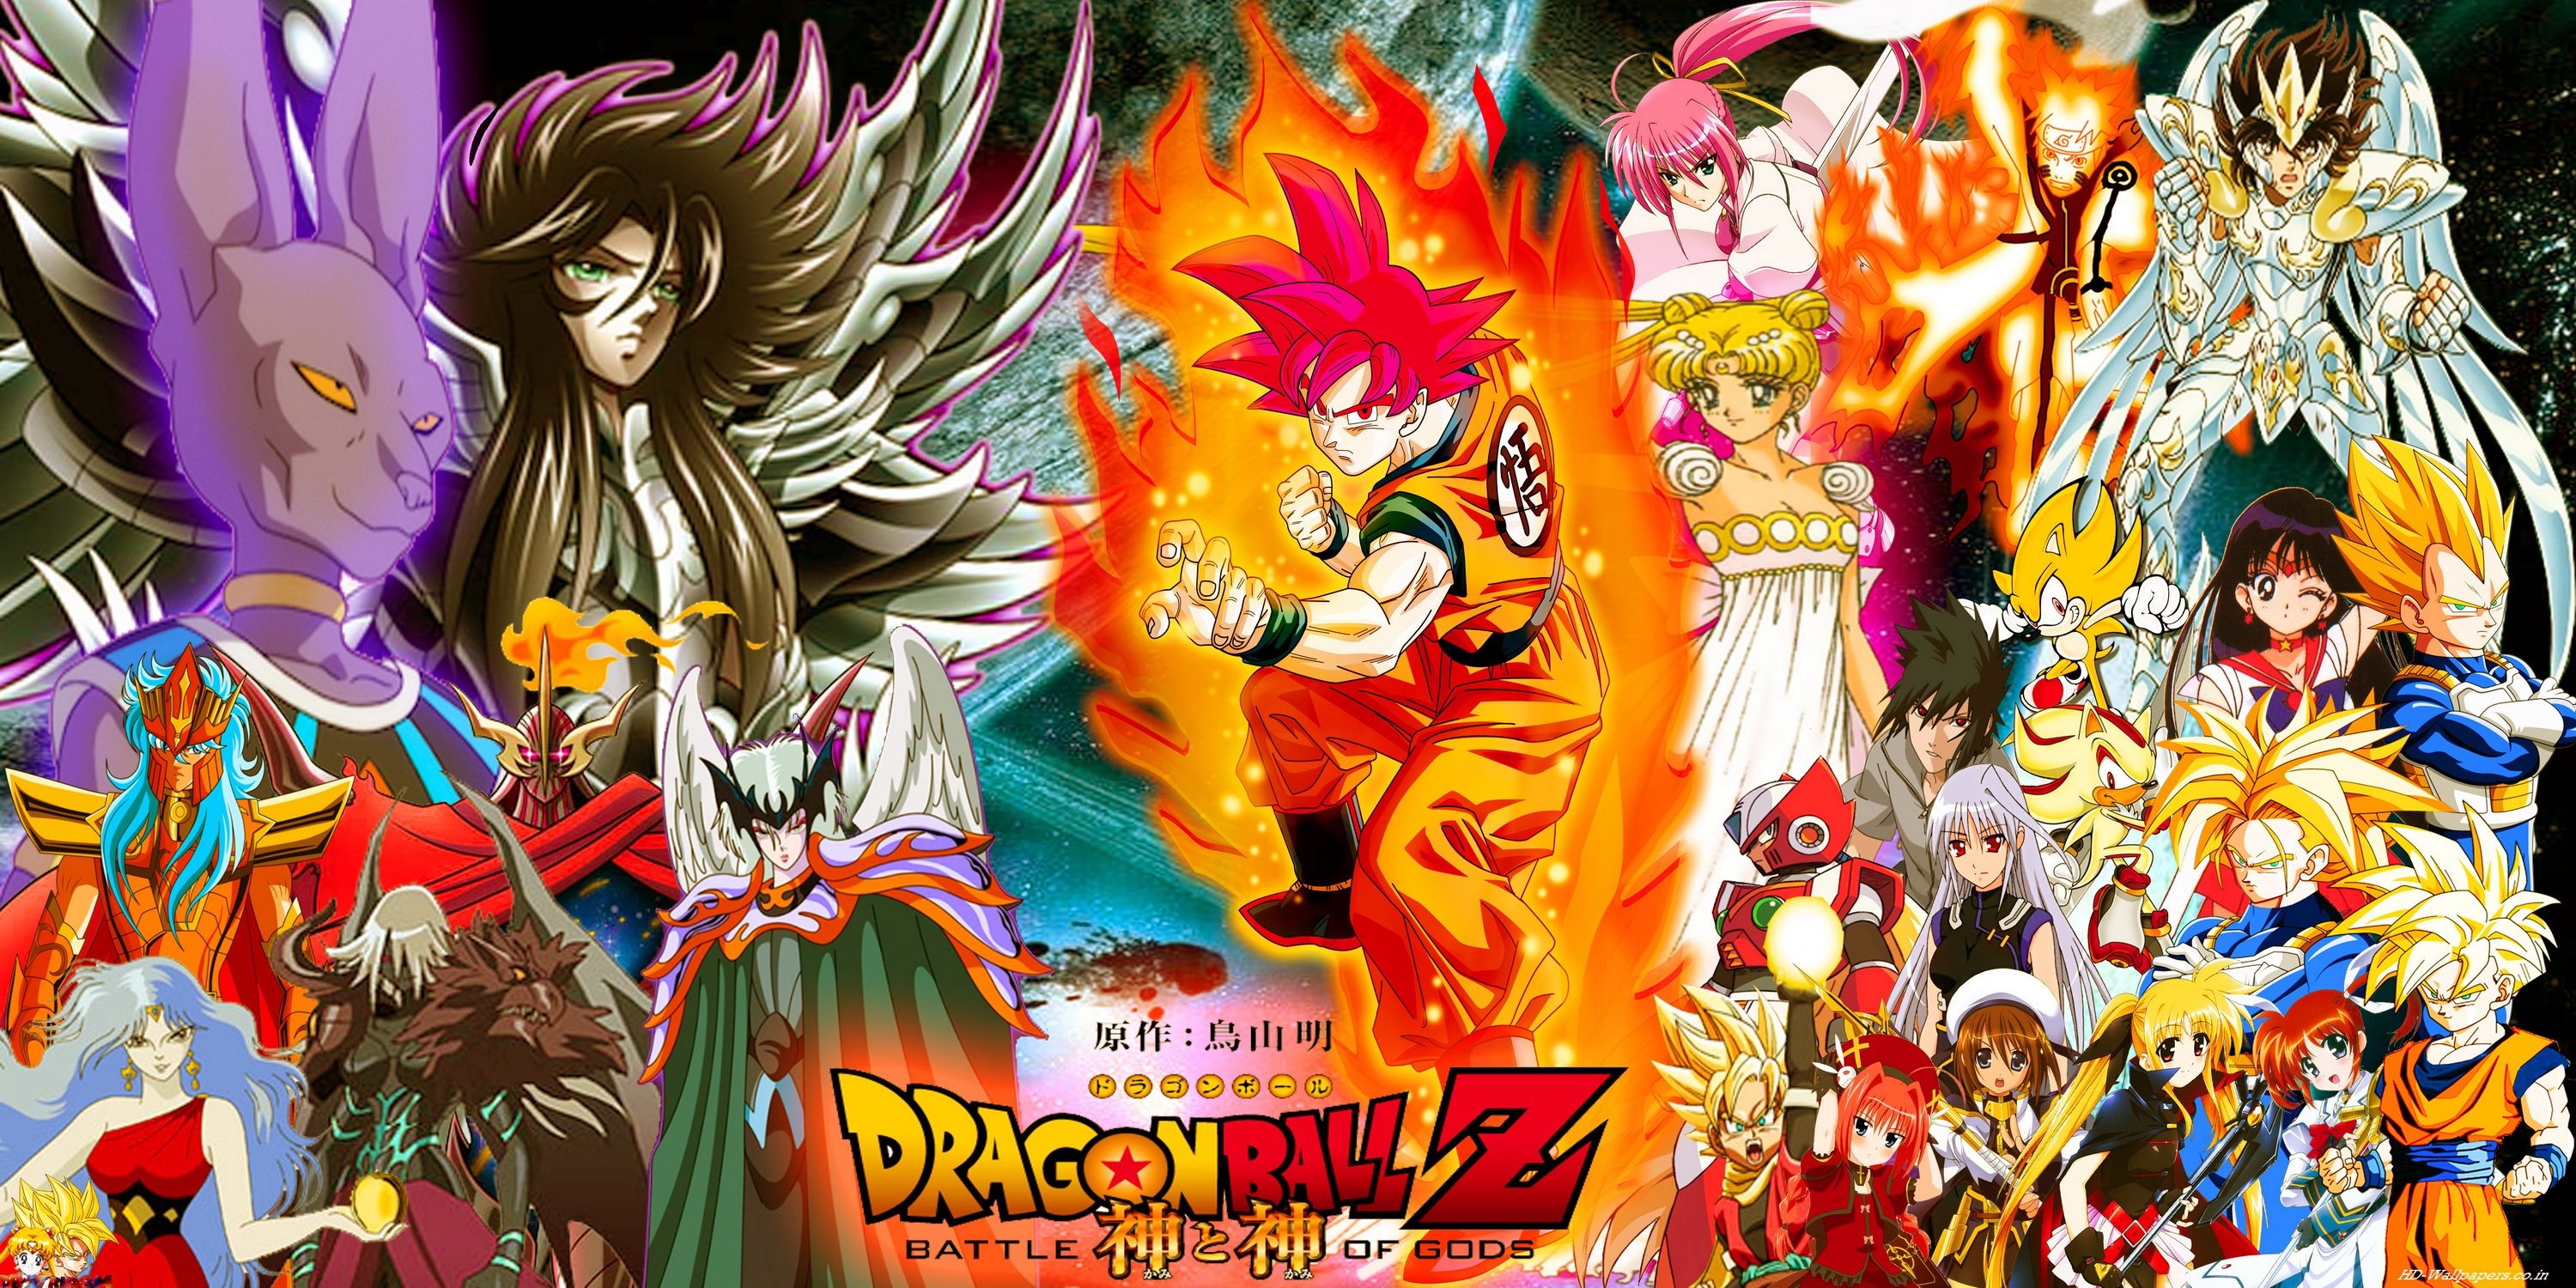 Dragon ball z wallpapers pictures images - 3d wallpaper of dragon ball z ...